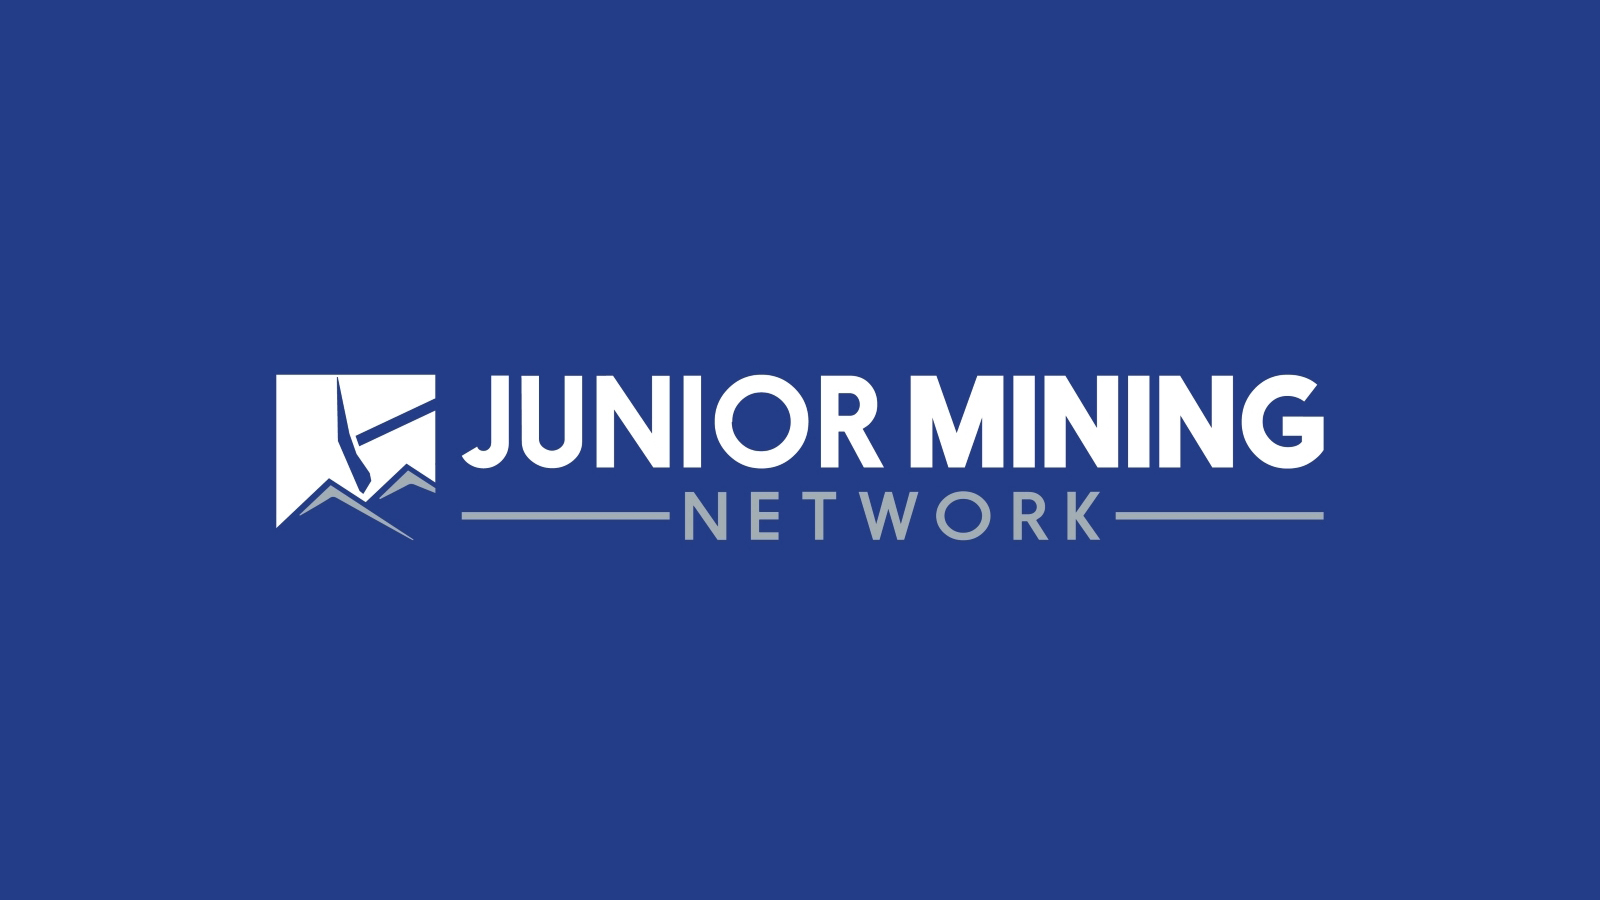 Junior Mining Network